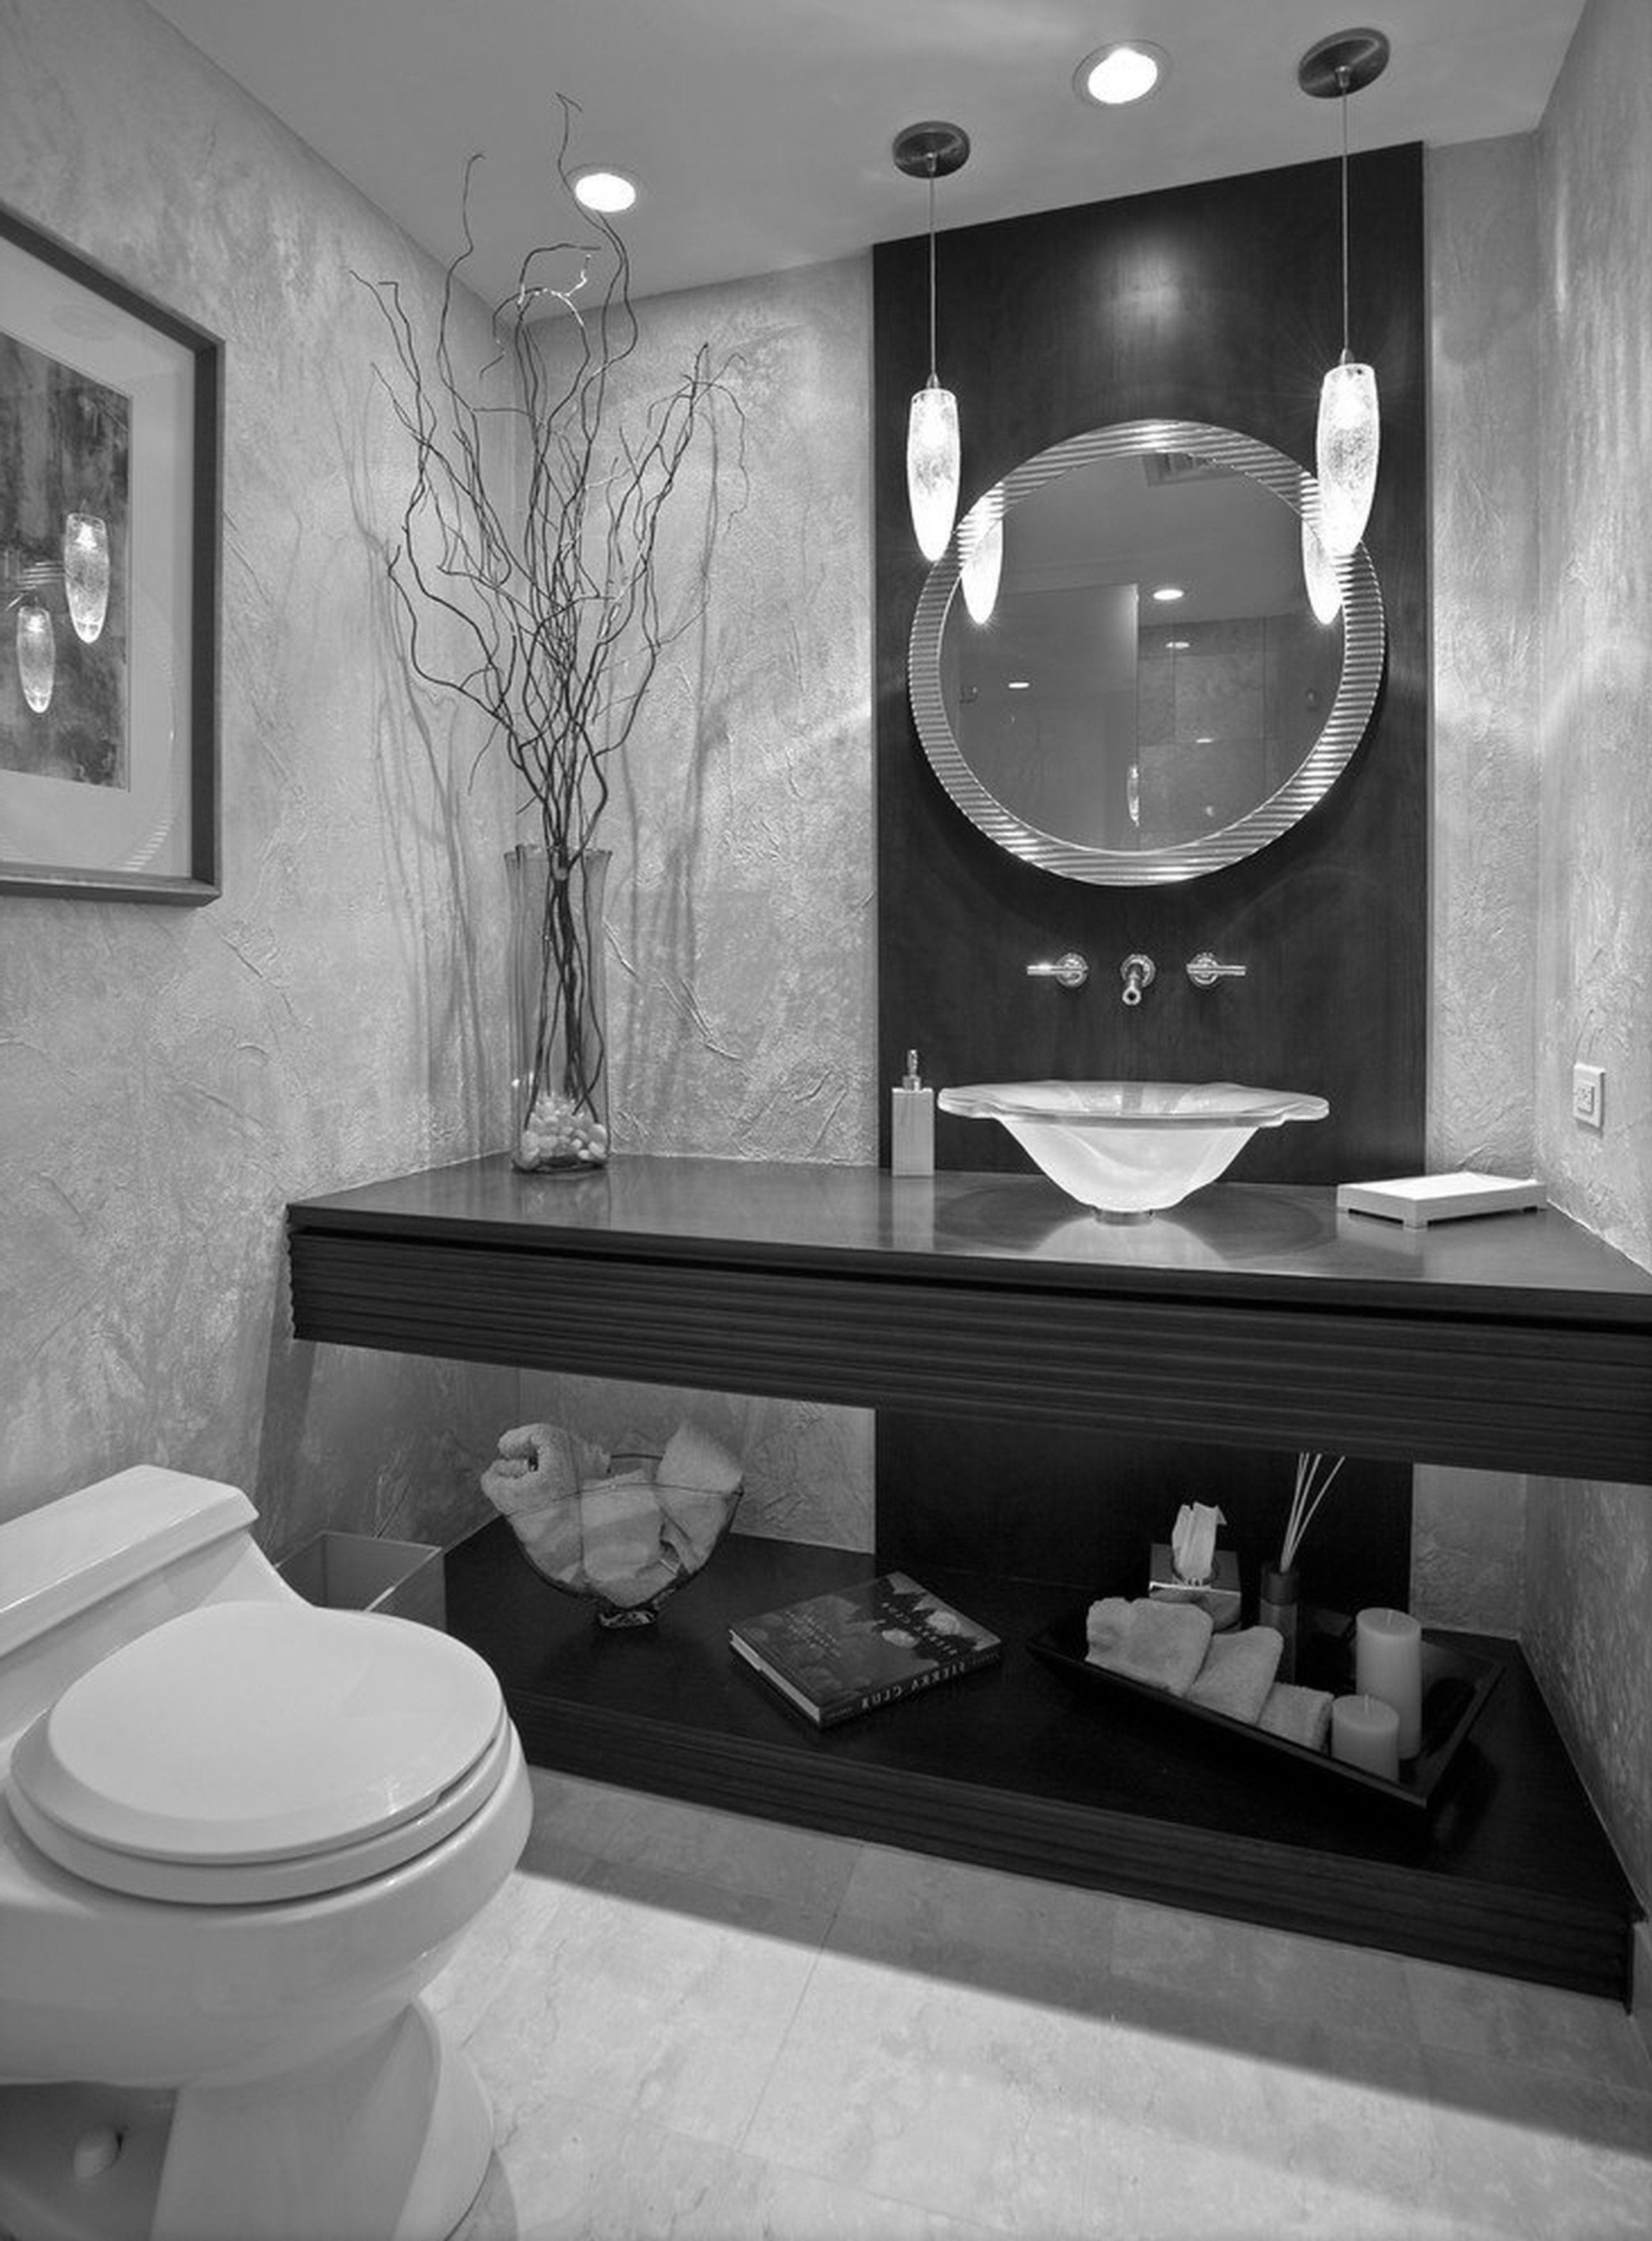 Everything You Need To Know About Most Amazing Black White And Silver Bathroom Ideas Ij03ds Https I Black Bathroom Decor White Bathroom Decor Silver Bathroom